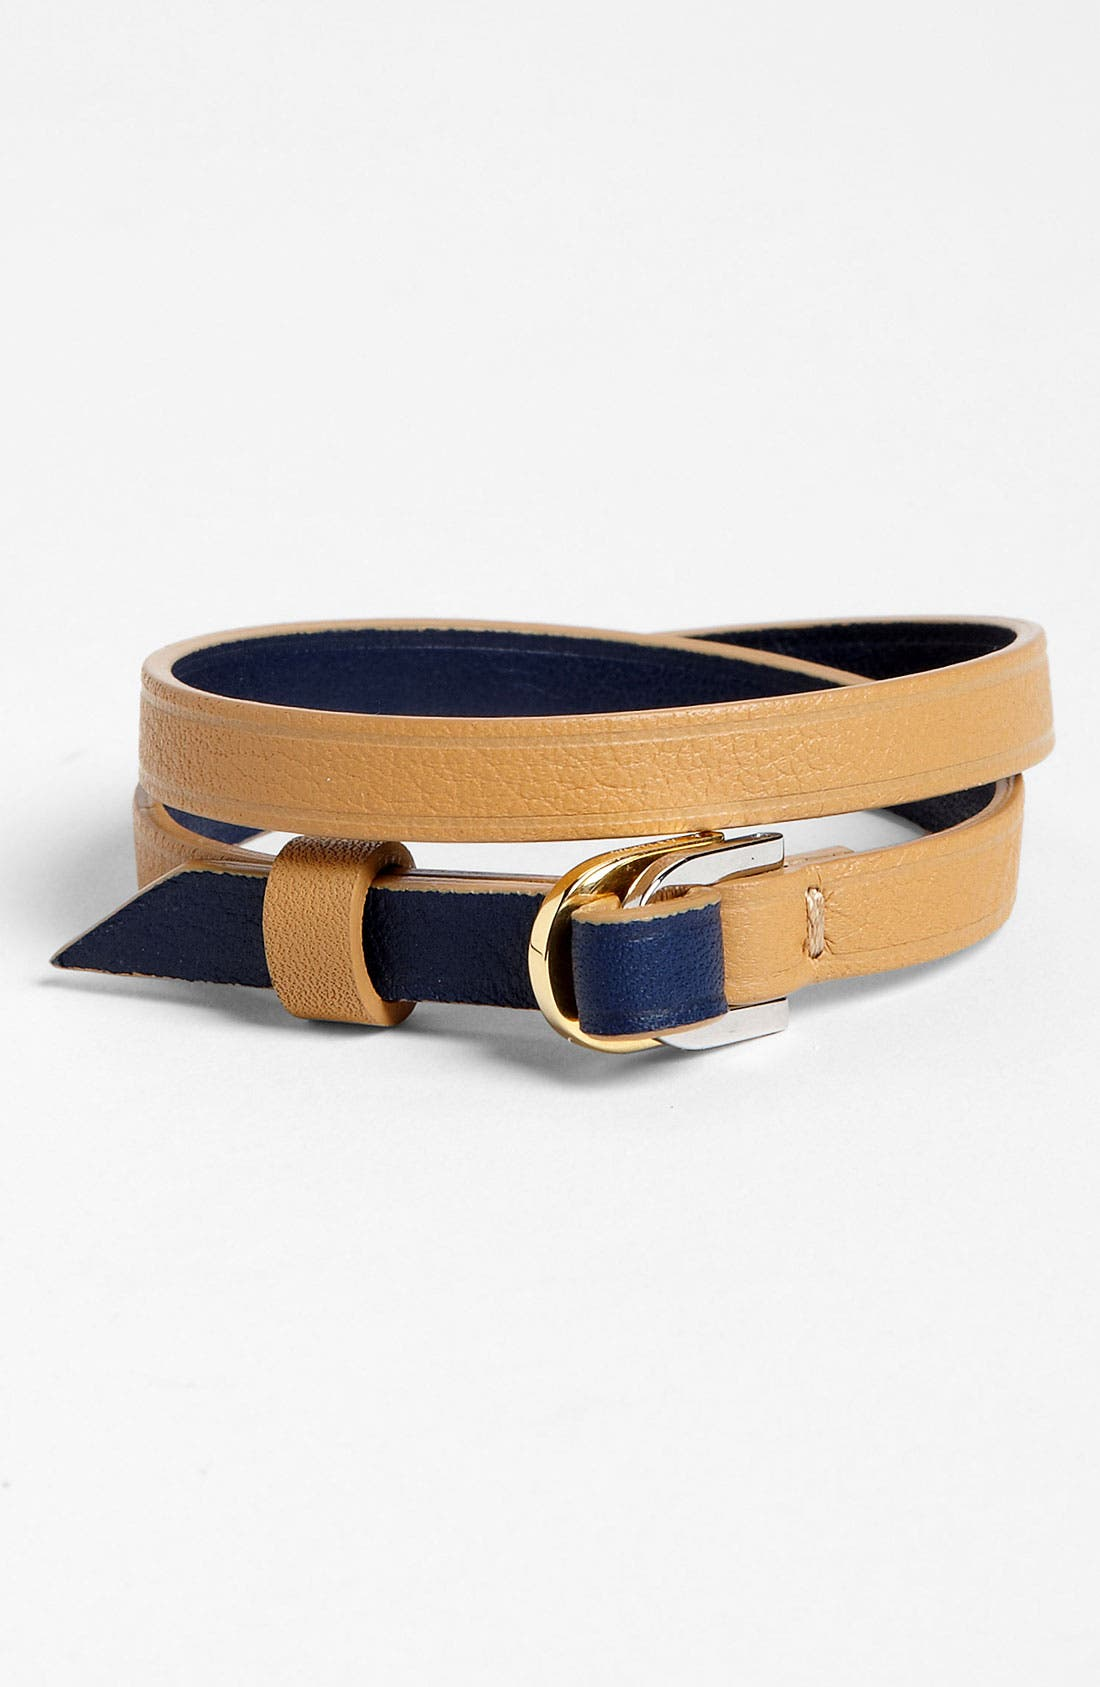 Main Image - WANT Les Essentiels de la Vie 'Arlanda' Reversible Leather Bracelet